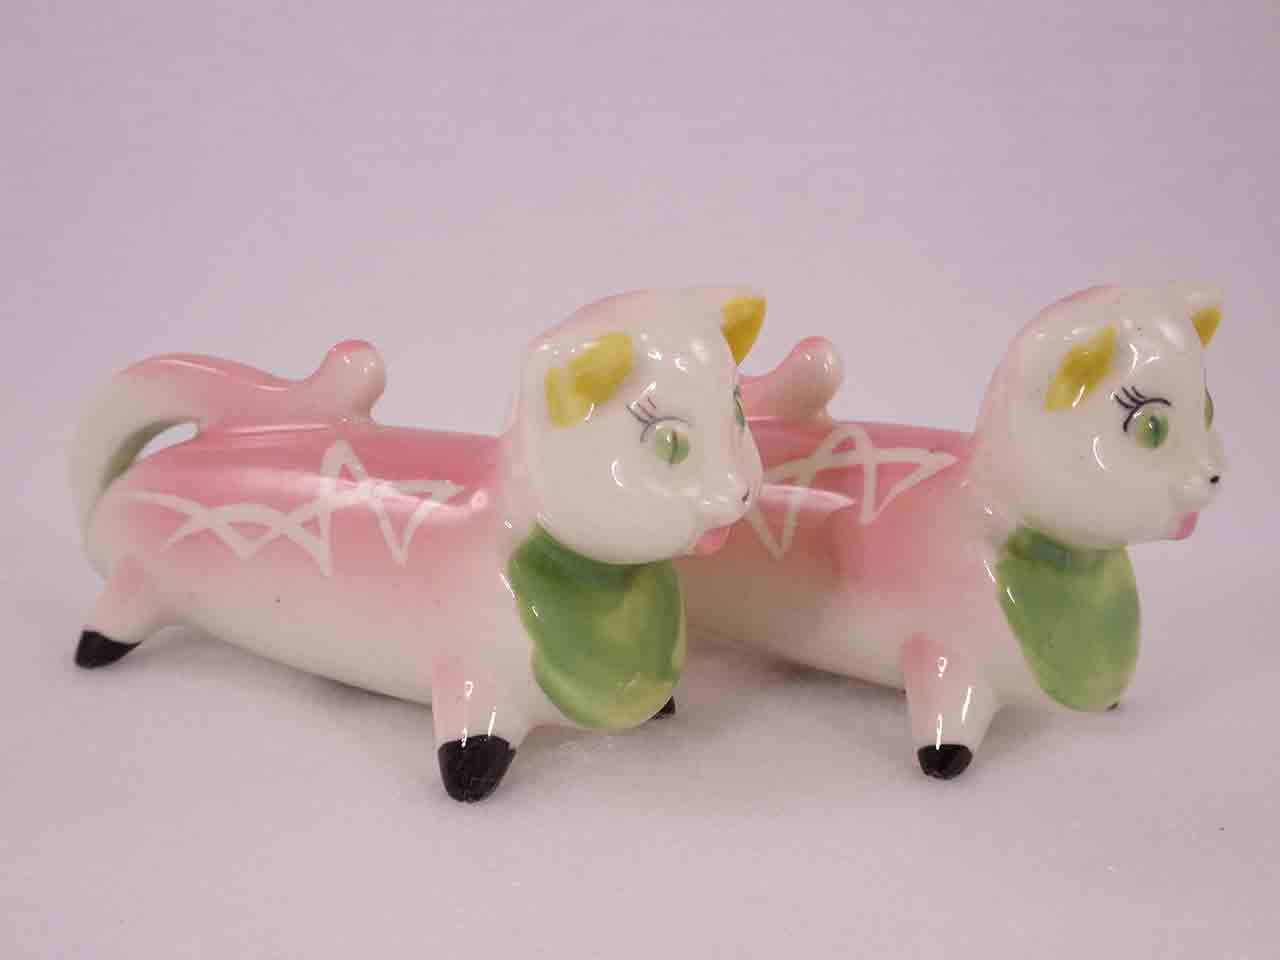 Longer Animals with White Squiggly Lines salt and pepper shakers - cats